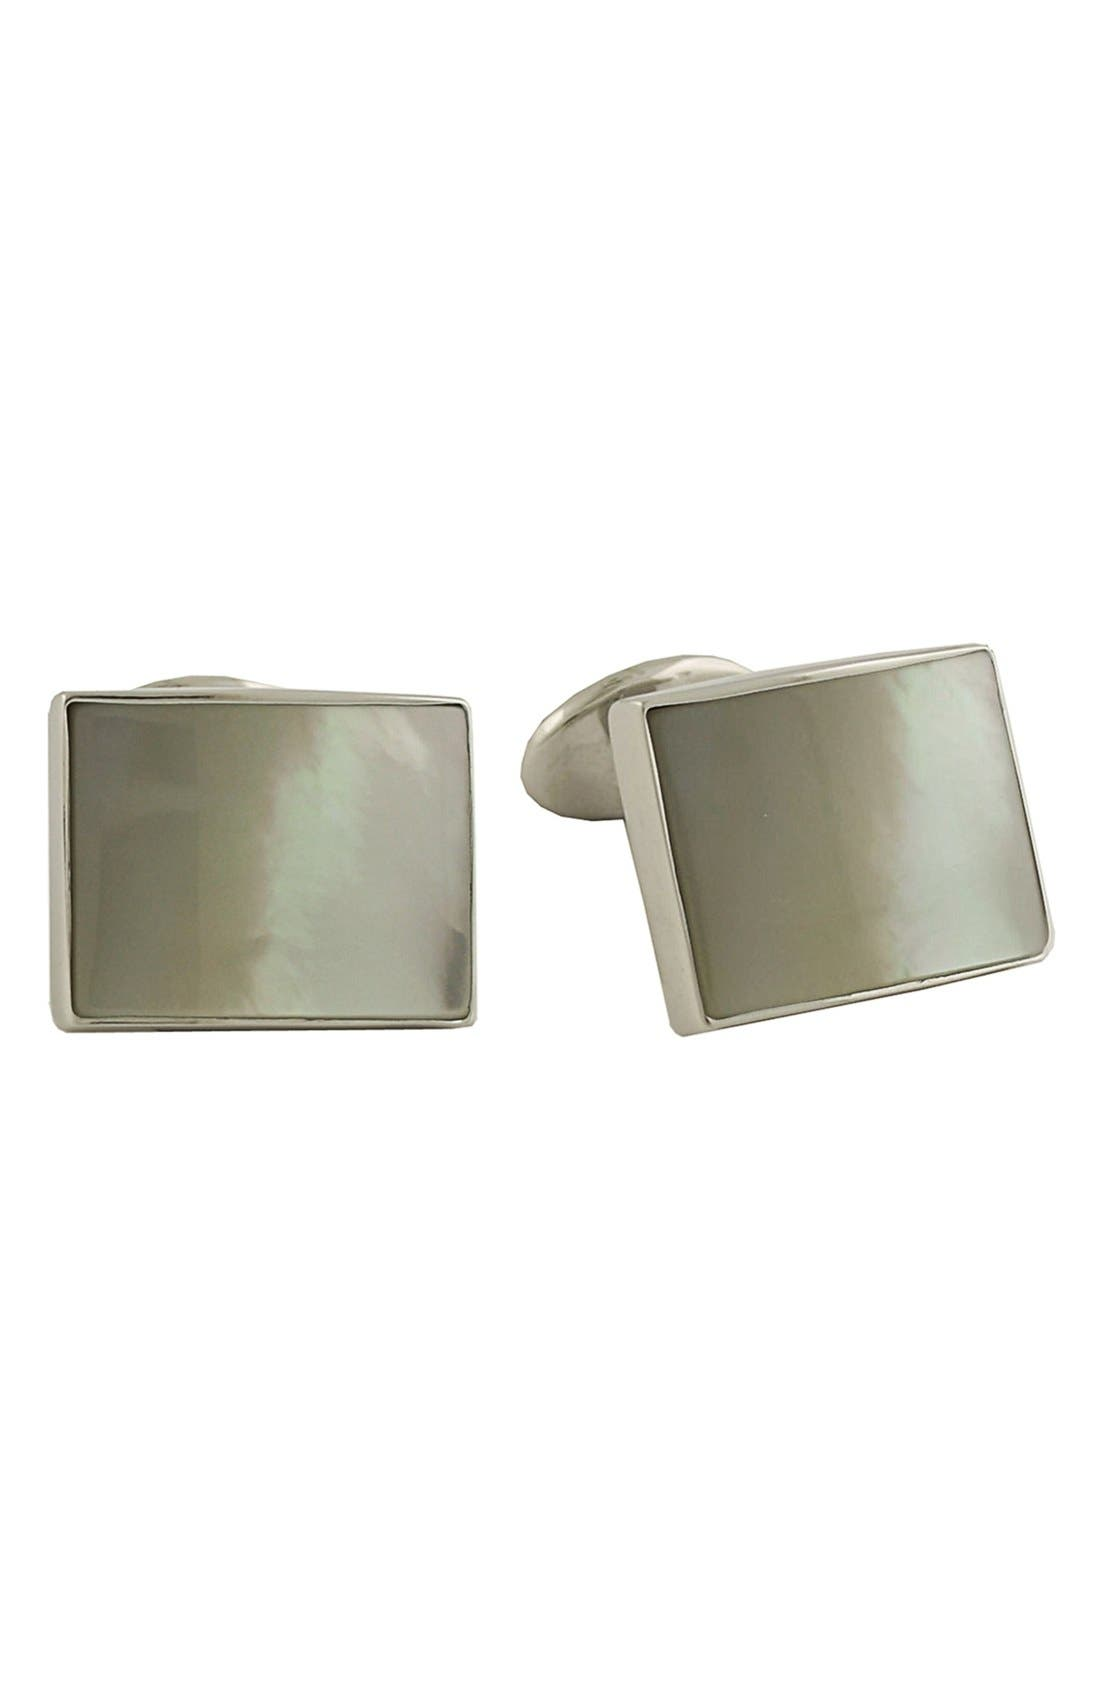 Sterling Silver Cuff Links,                             Main thumbnail 1, color,                             MOTHER OF PEARL